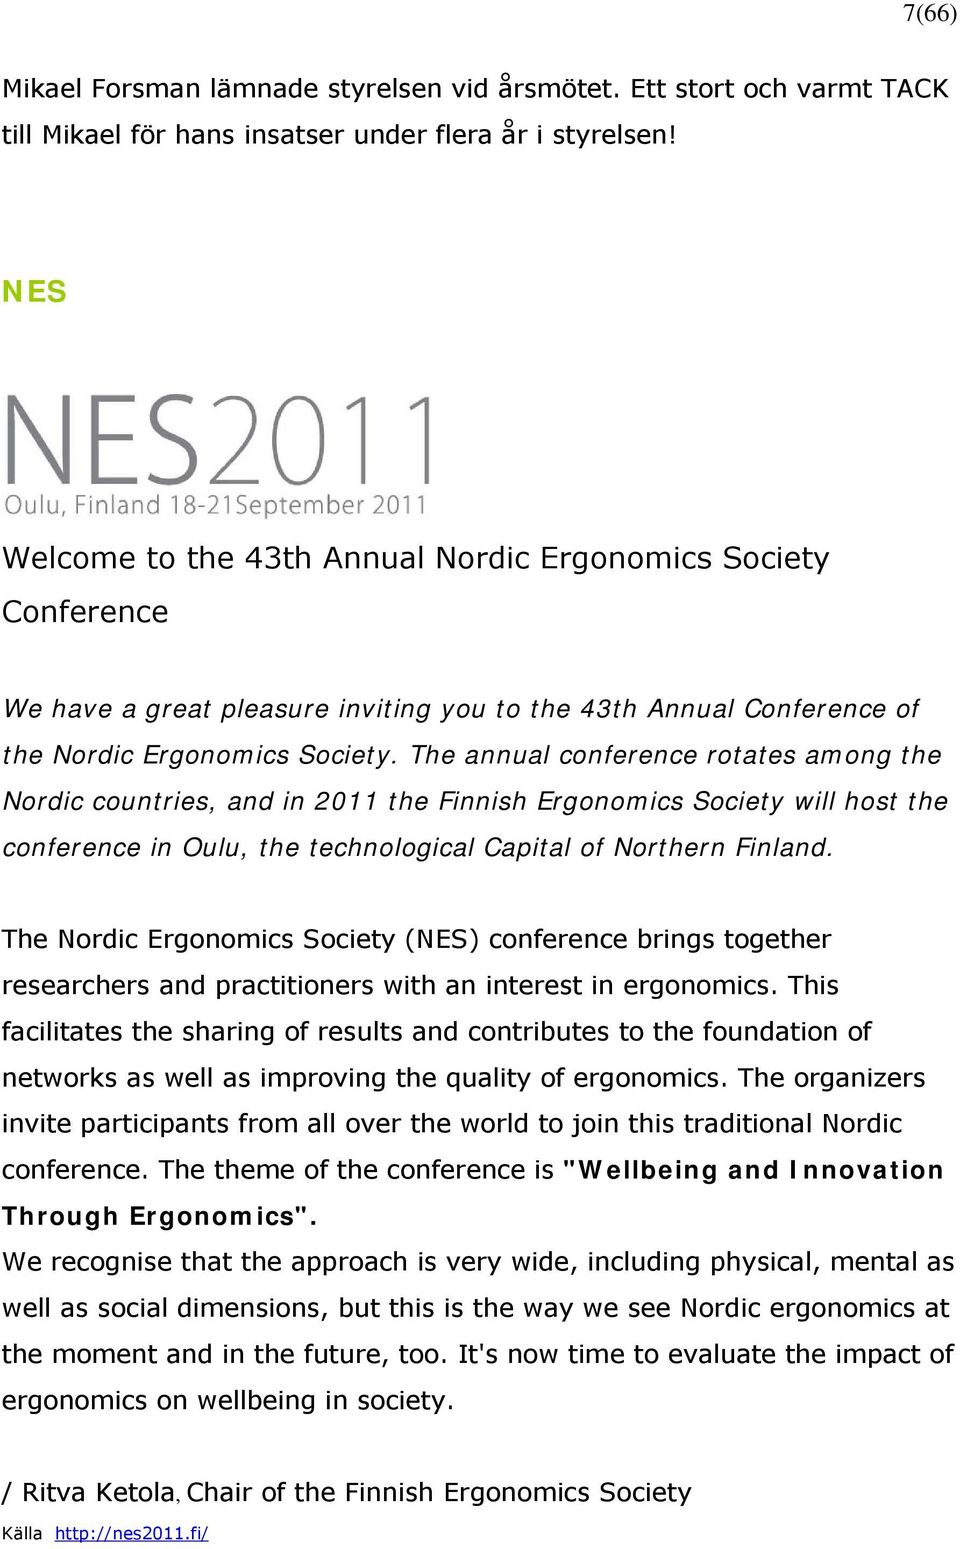 The annual conference rotates among the Nordic countries, and in 2011 the Finnish Ergonomics Society will host the conference in Oulu, the technological Capital of Northern Finland.